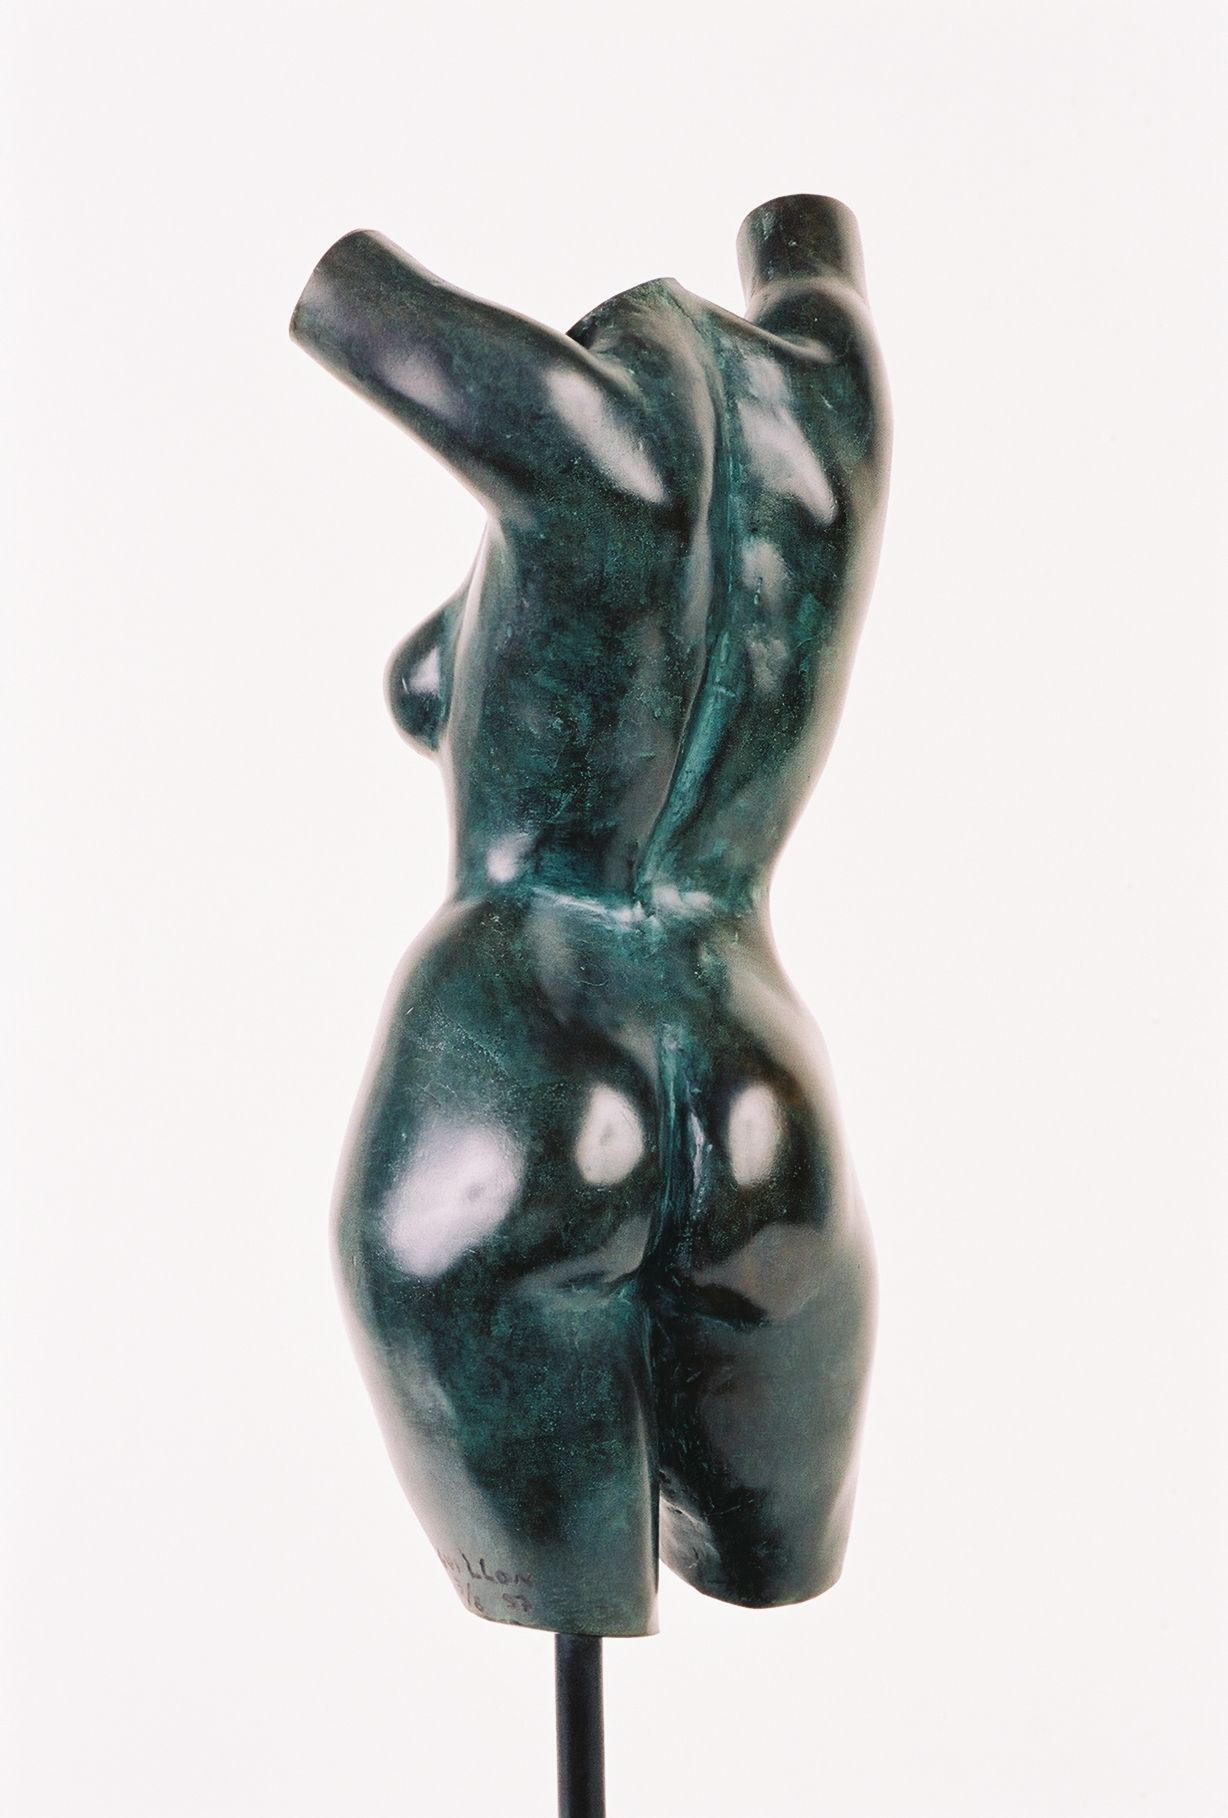 Torse de Caroline,Yann Guillon,Sculpture